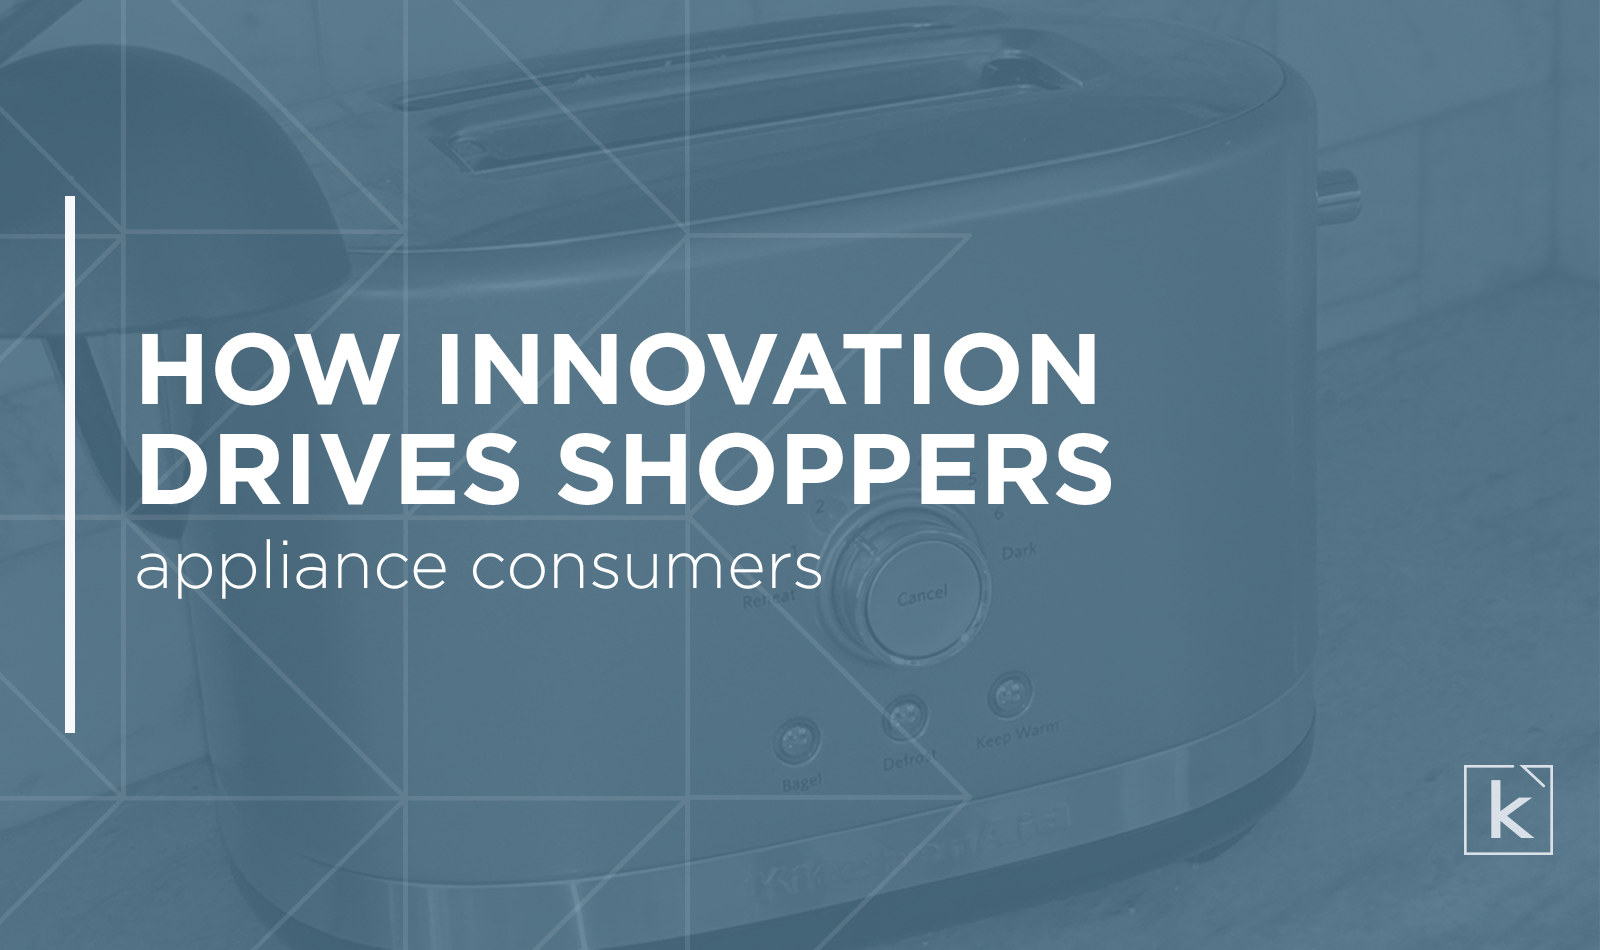 toaster-innovation-drives-appliance-shoppers